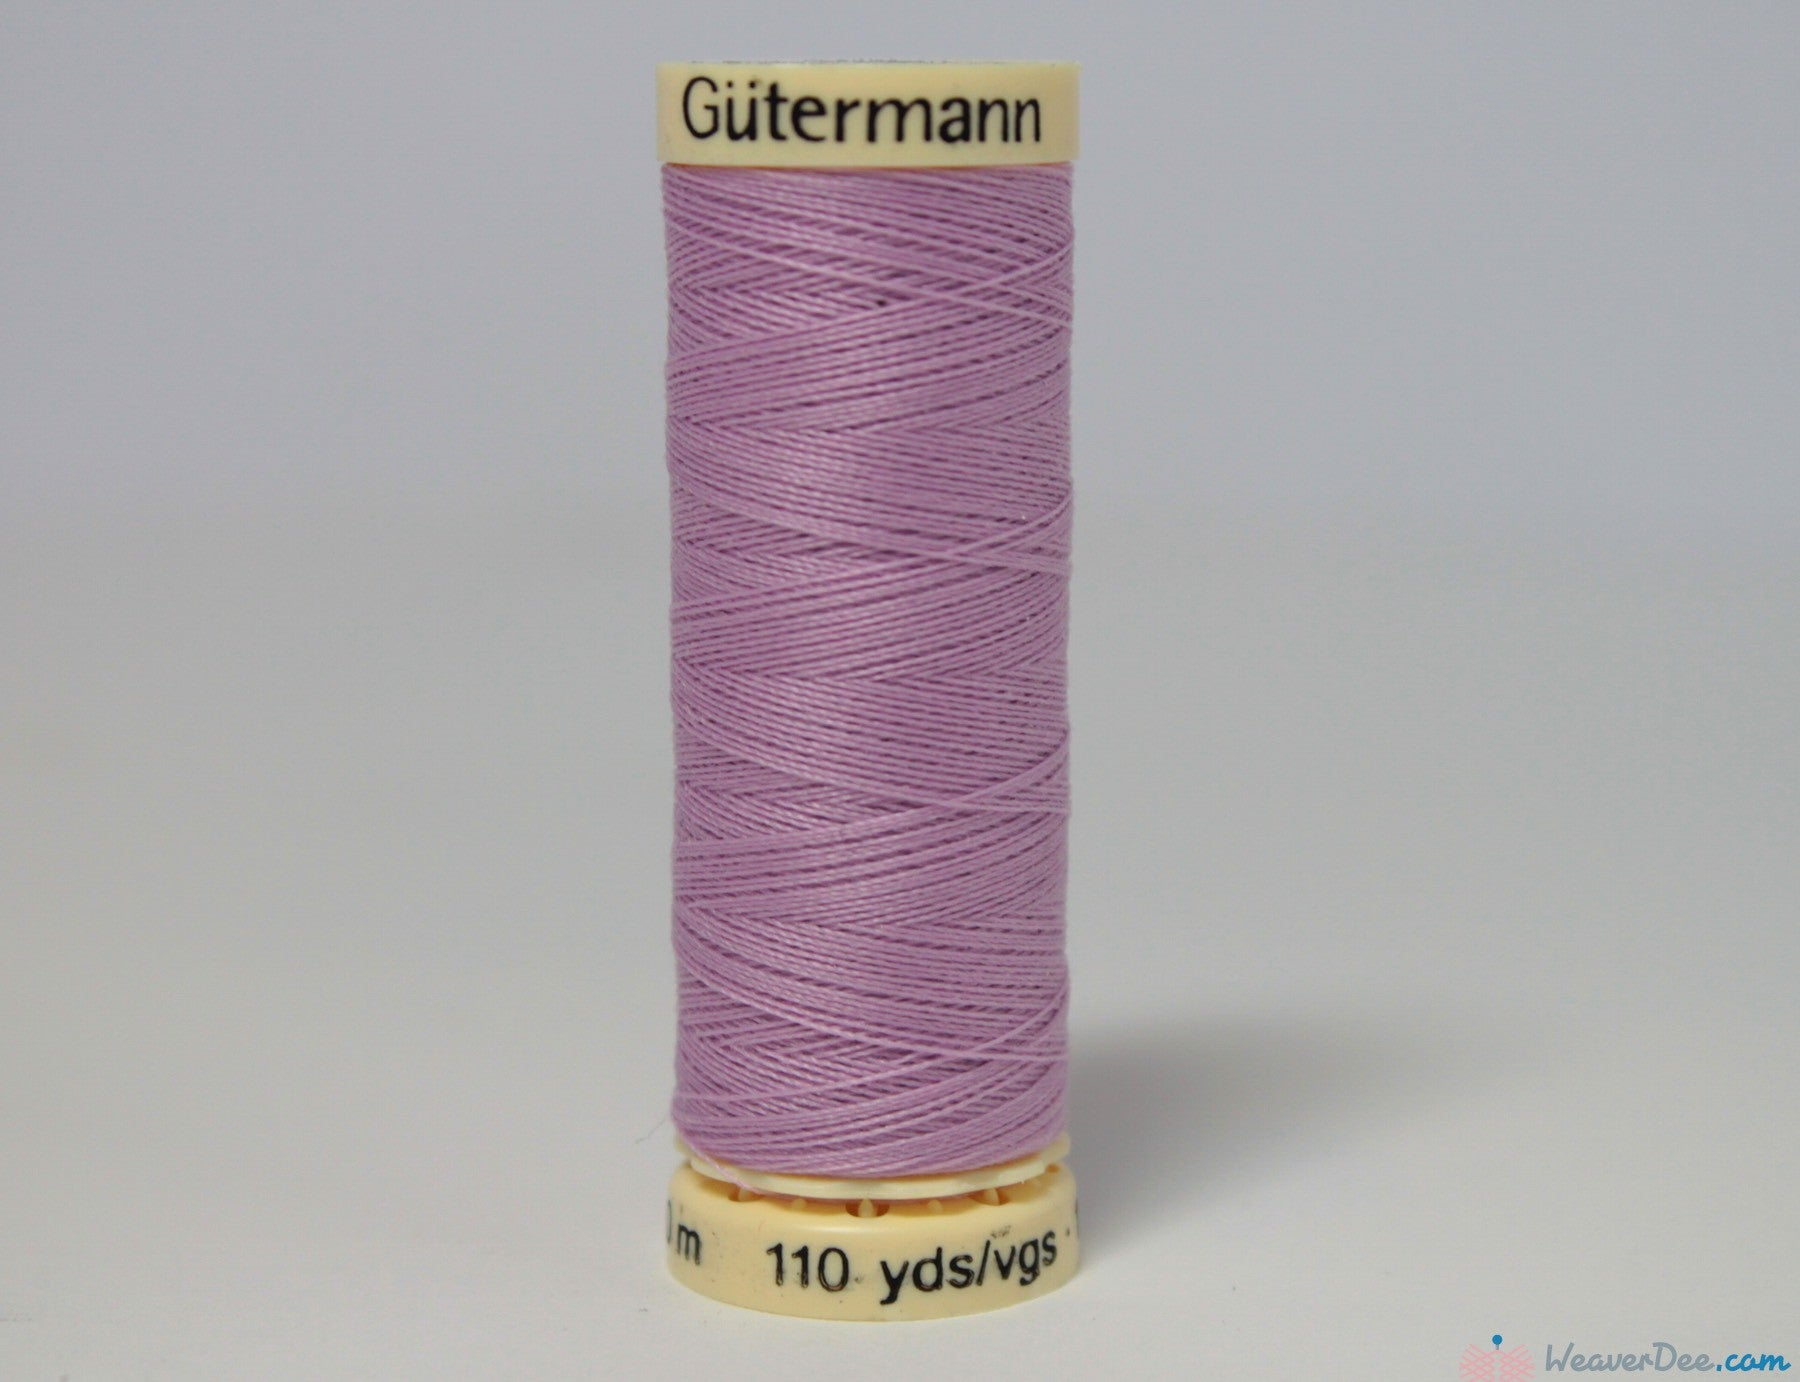 Gütermann - Sew-All Polyester Sewing Thread [441 Pastel Purple] - WeaverDee.com Sewing & Crafts - 1